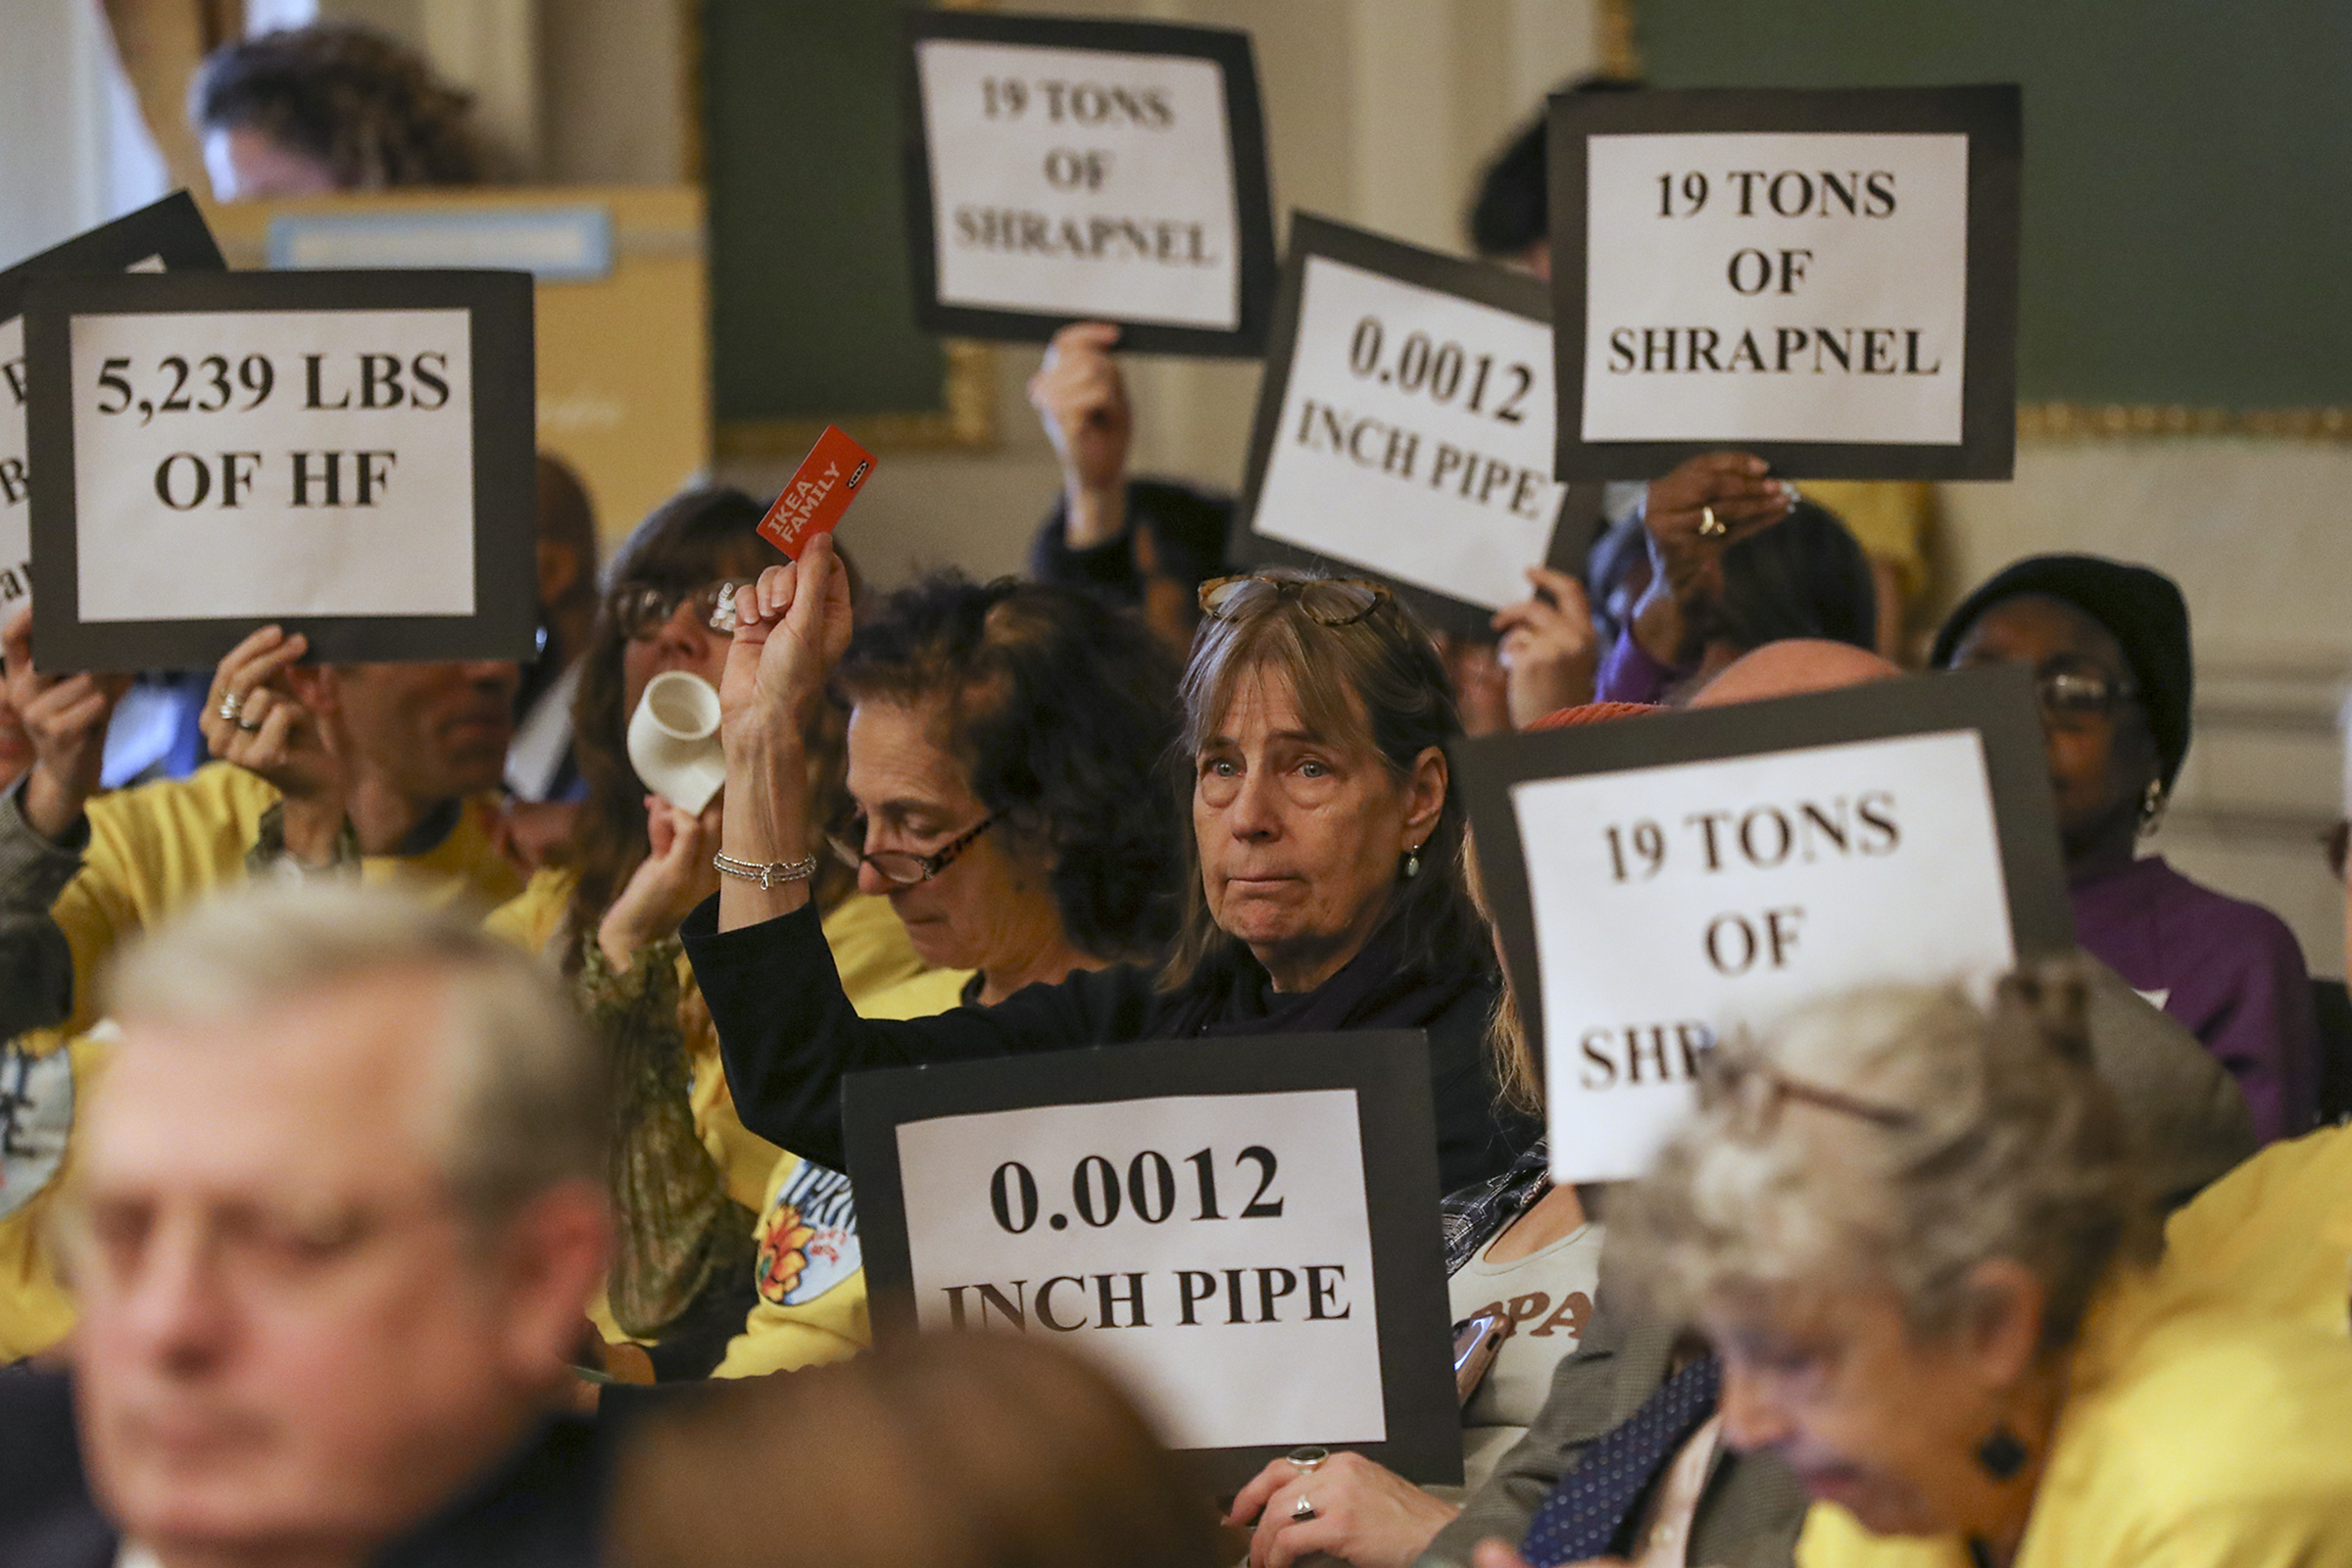 Protesters, many associated with the Philly Thrive organization, appear at a November 2019 City Council hearing about the Philadelphia Energy Solutions refinery accident.